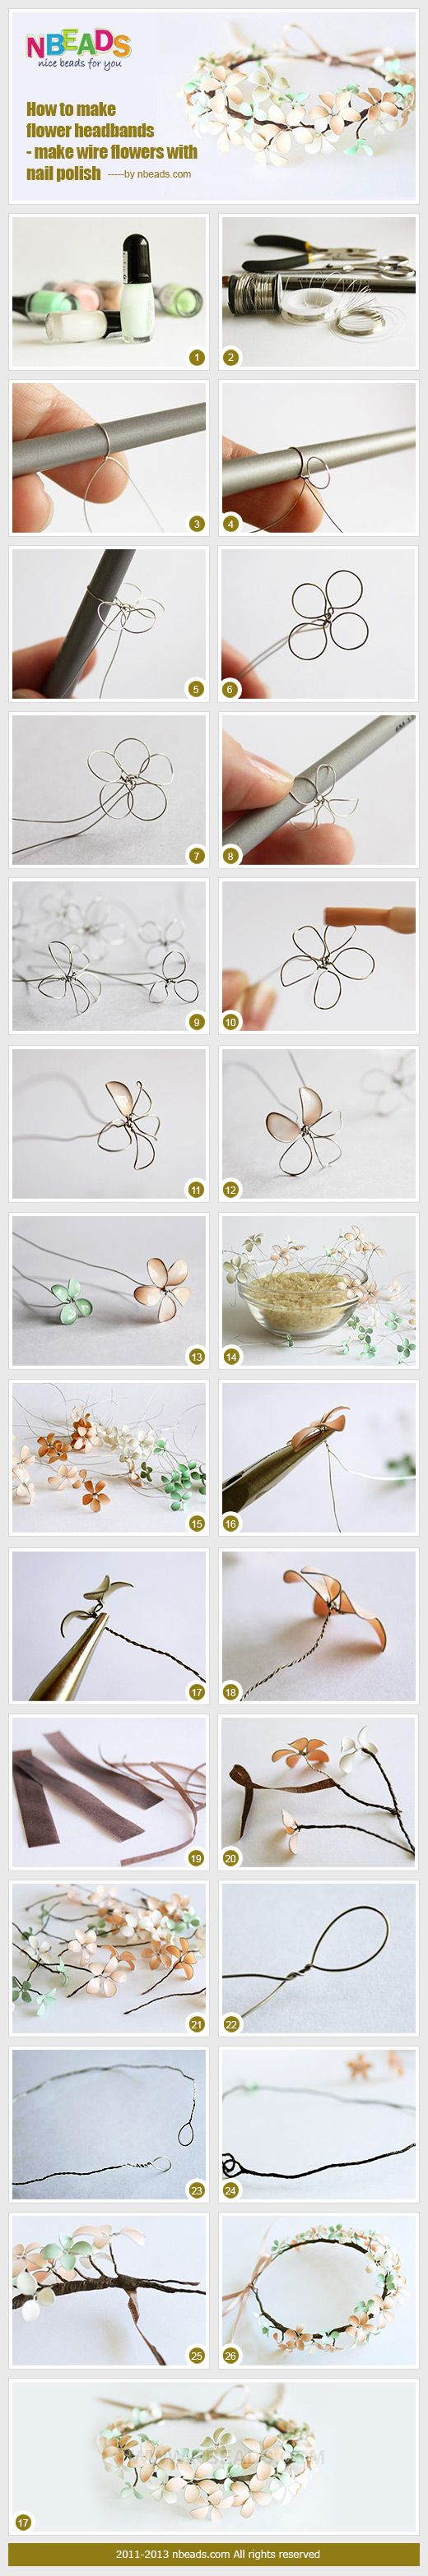 Gonna have to try this..http://pintercrafts.blogspot.ca/2013/04/spring-flowers-or-second-life-of-your.html